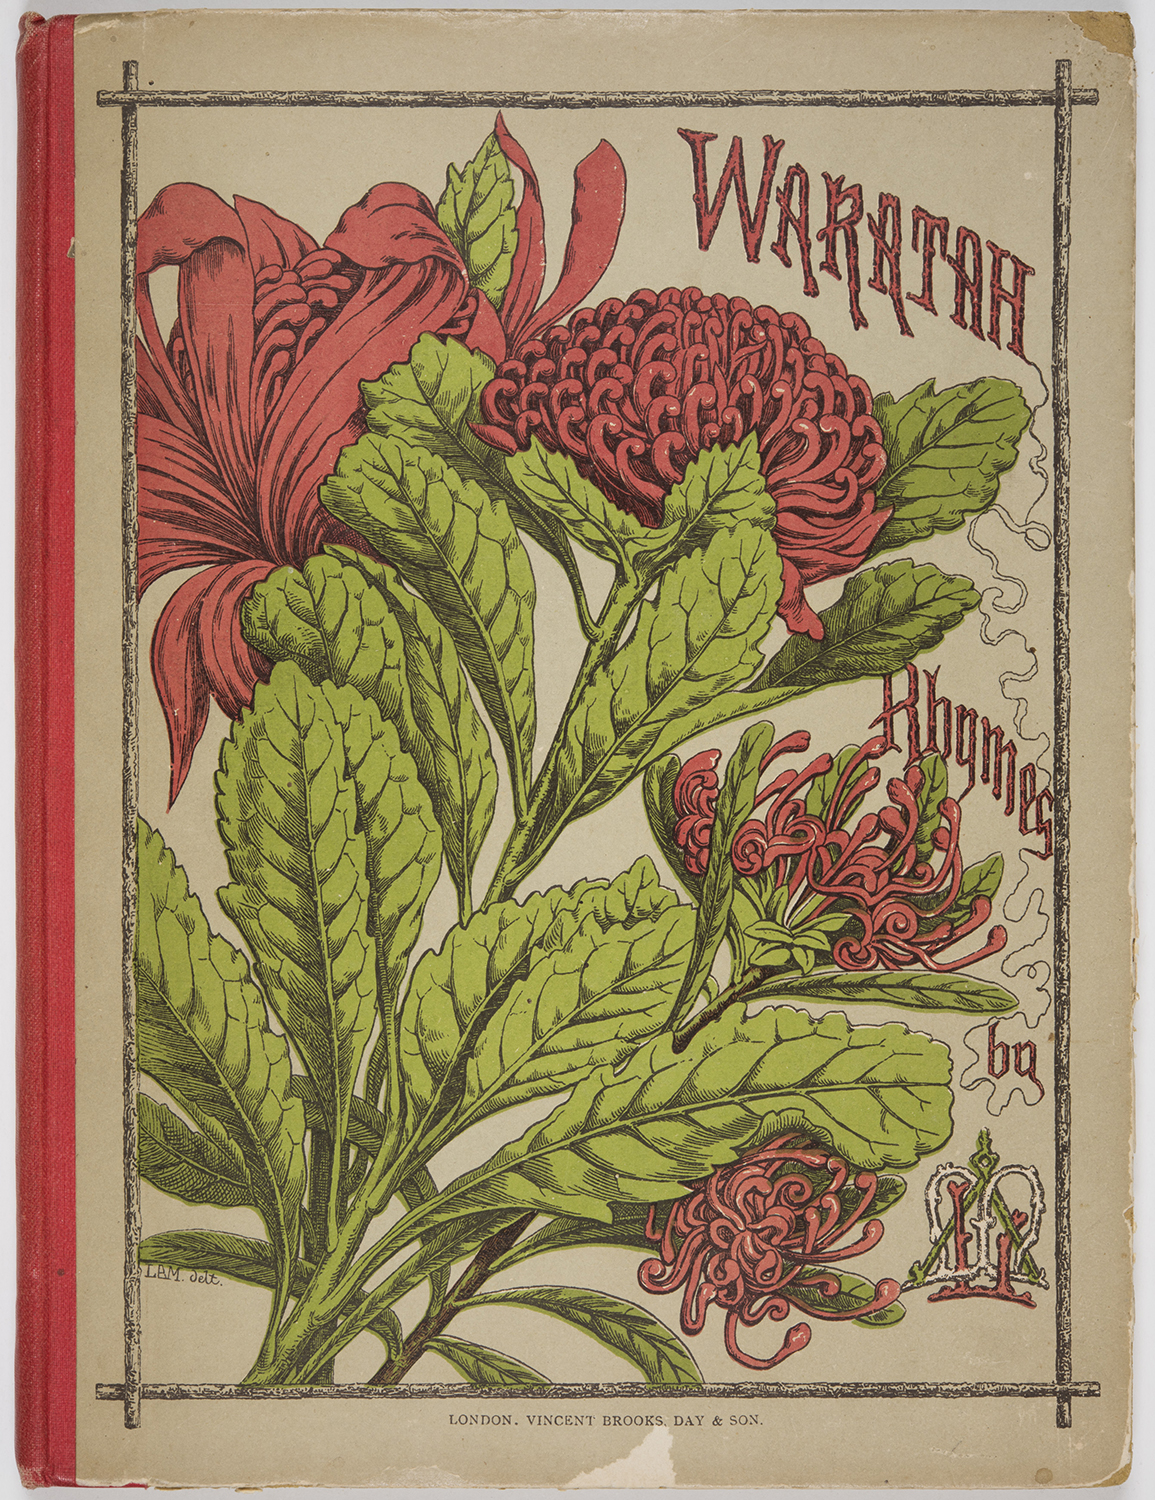 The cover of a worn, brown book called 'Waratah Rhymes' with illustration of waratah and red binding.